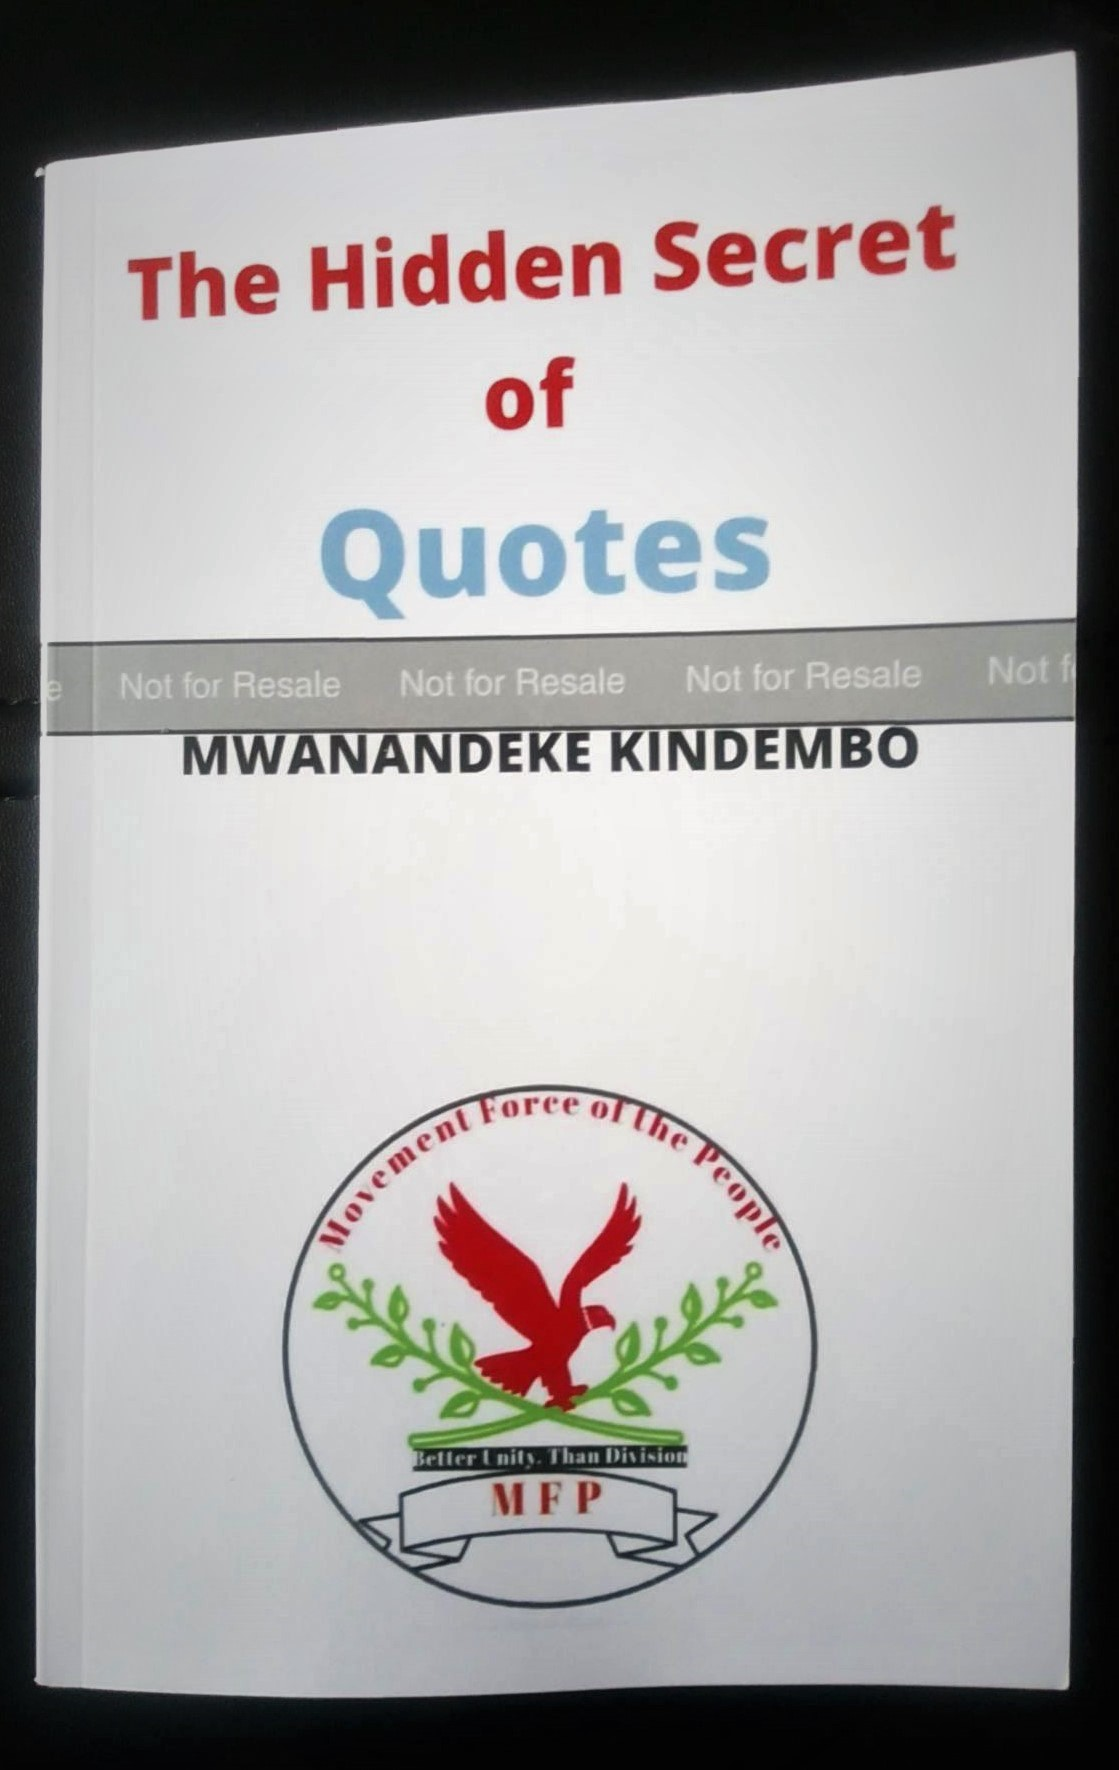 The Hidden Secret of Quotes Front Cover by Mwanandeke Kindembo